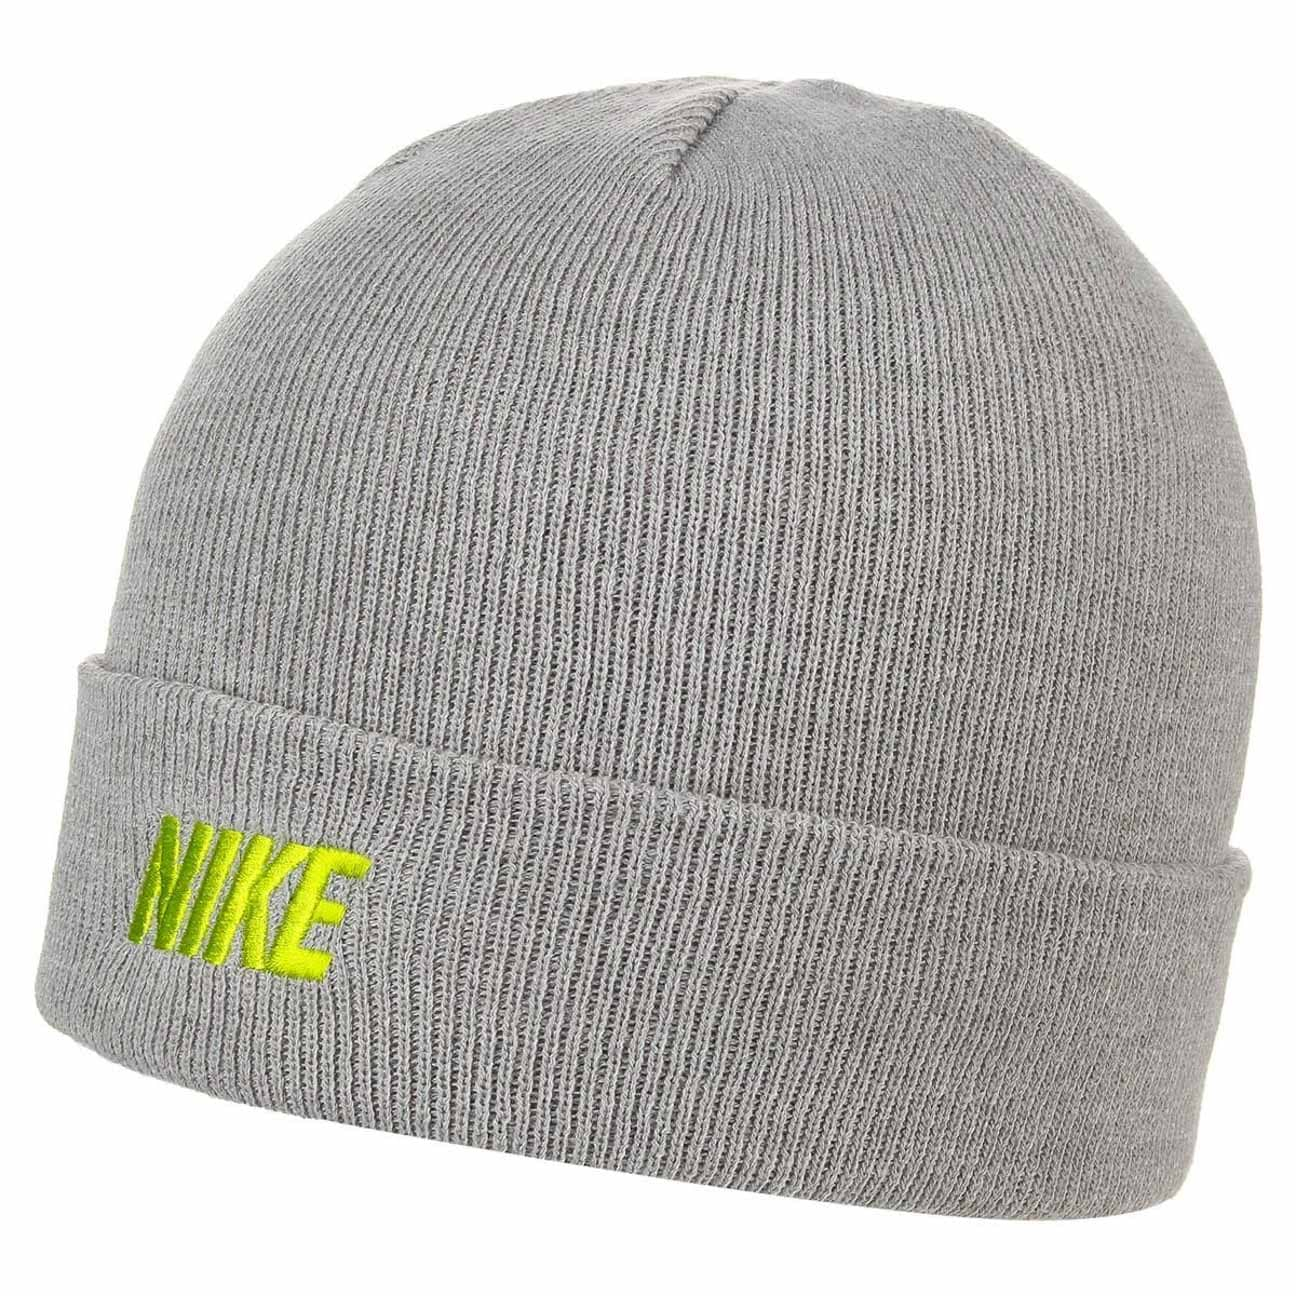 57eedf360d3 Iconic Winter Knit Hat by Nike - 19